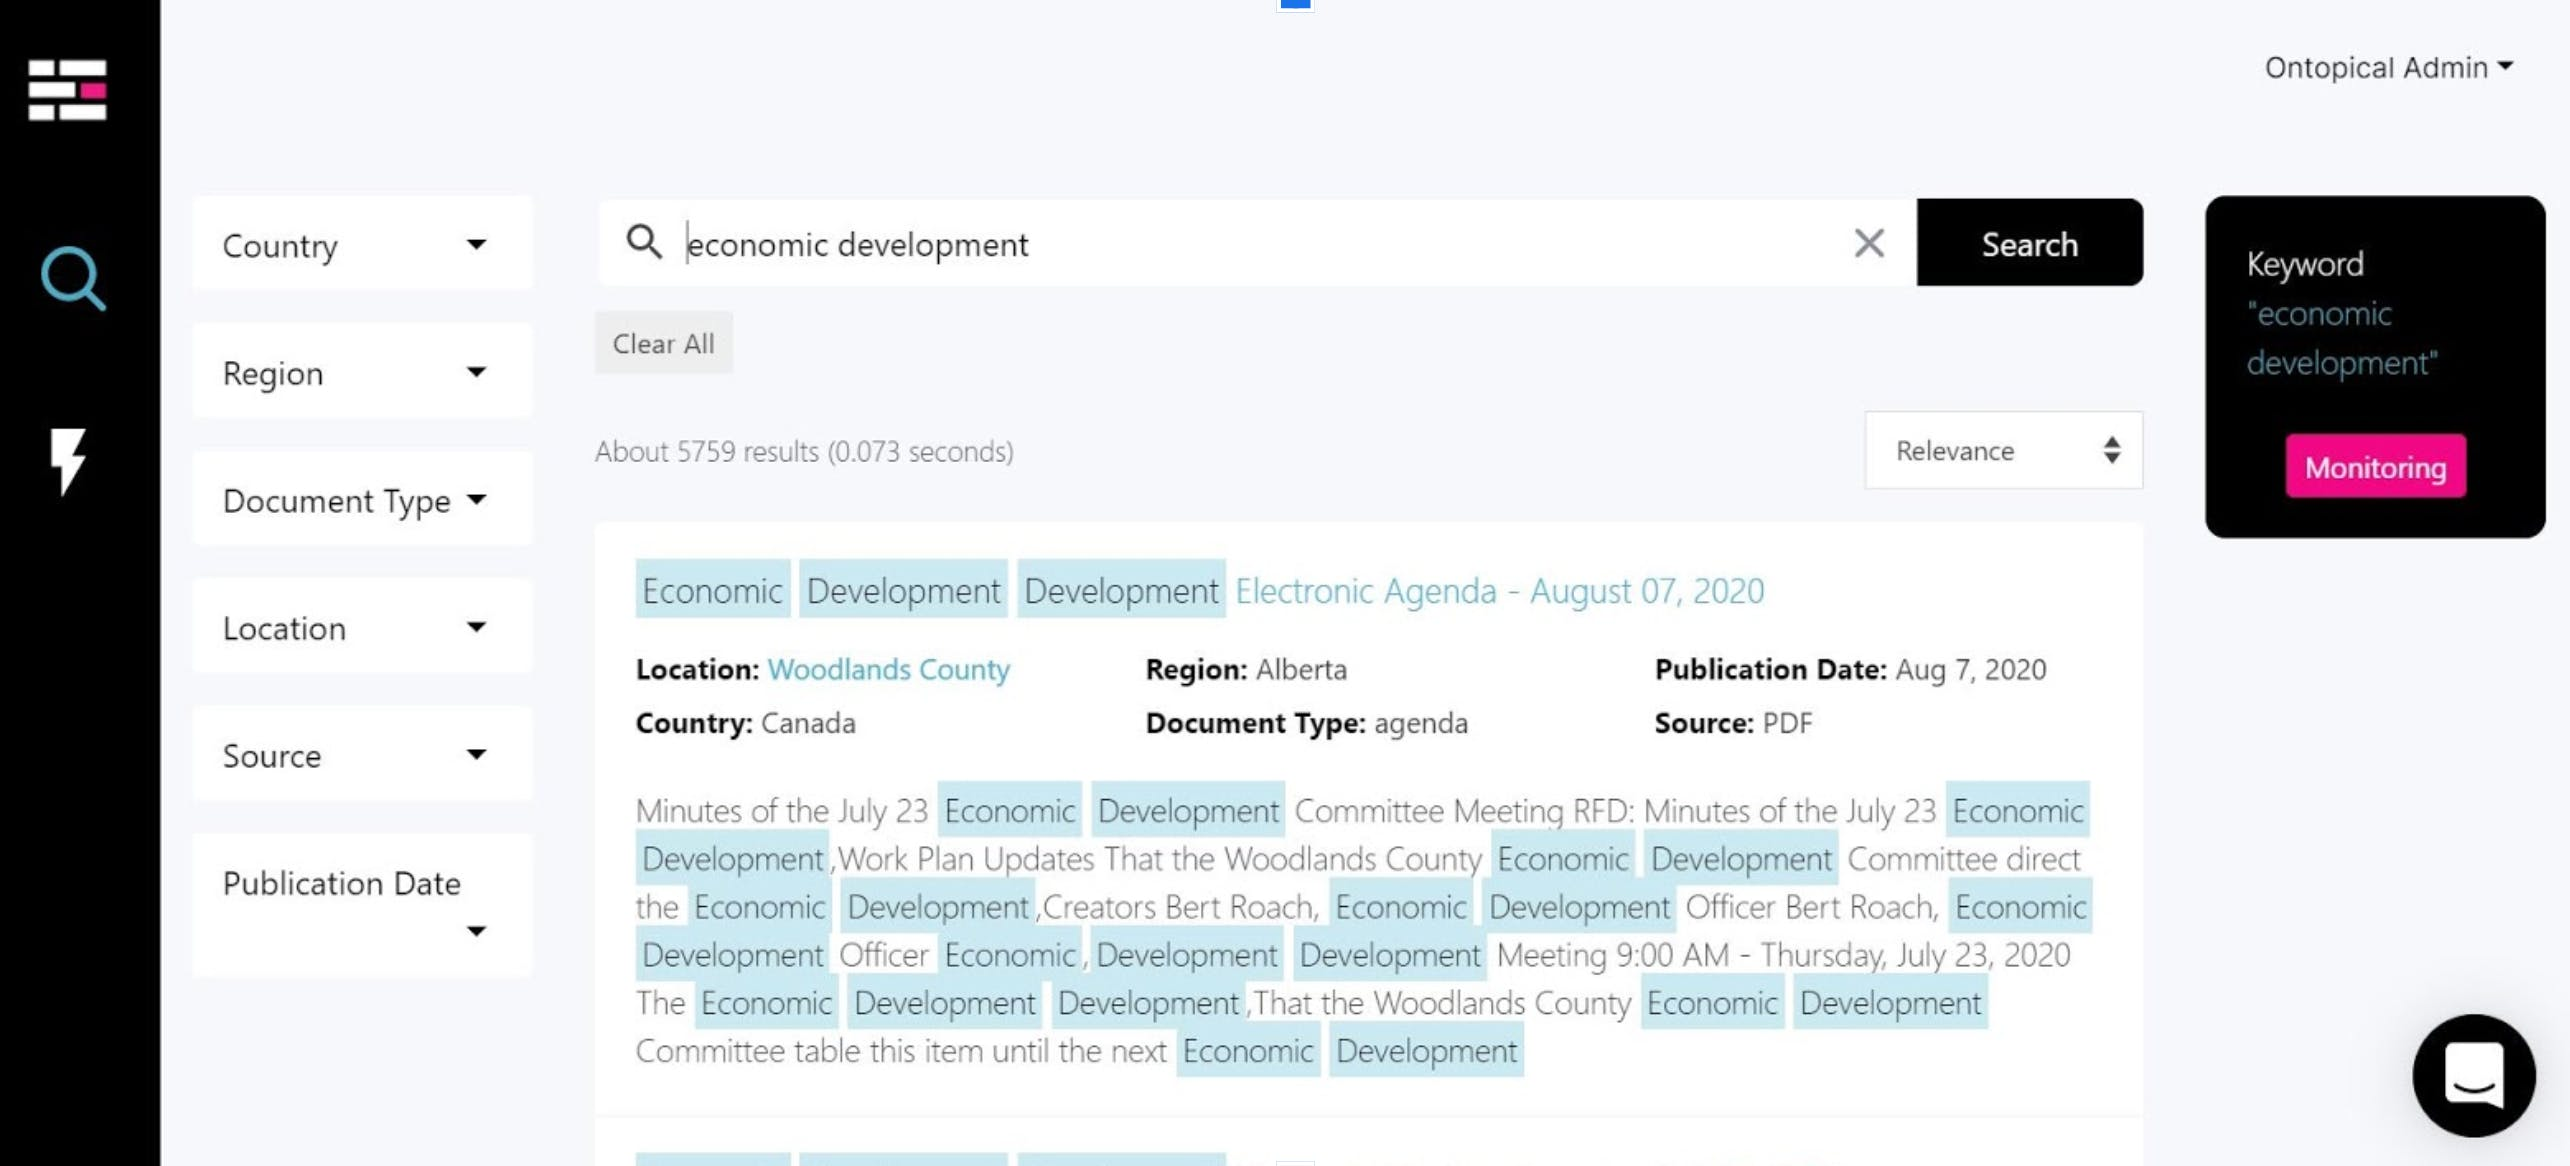 Ontopical uses full-text search from appbase.io and helps businesses cruise public government content.